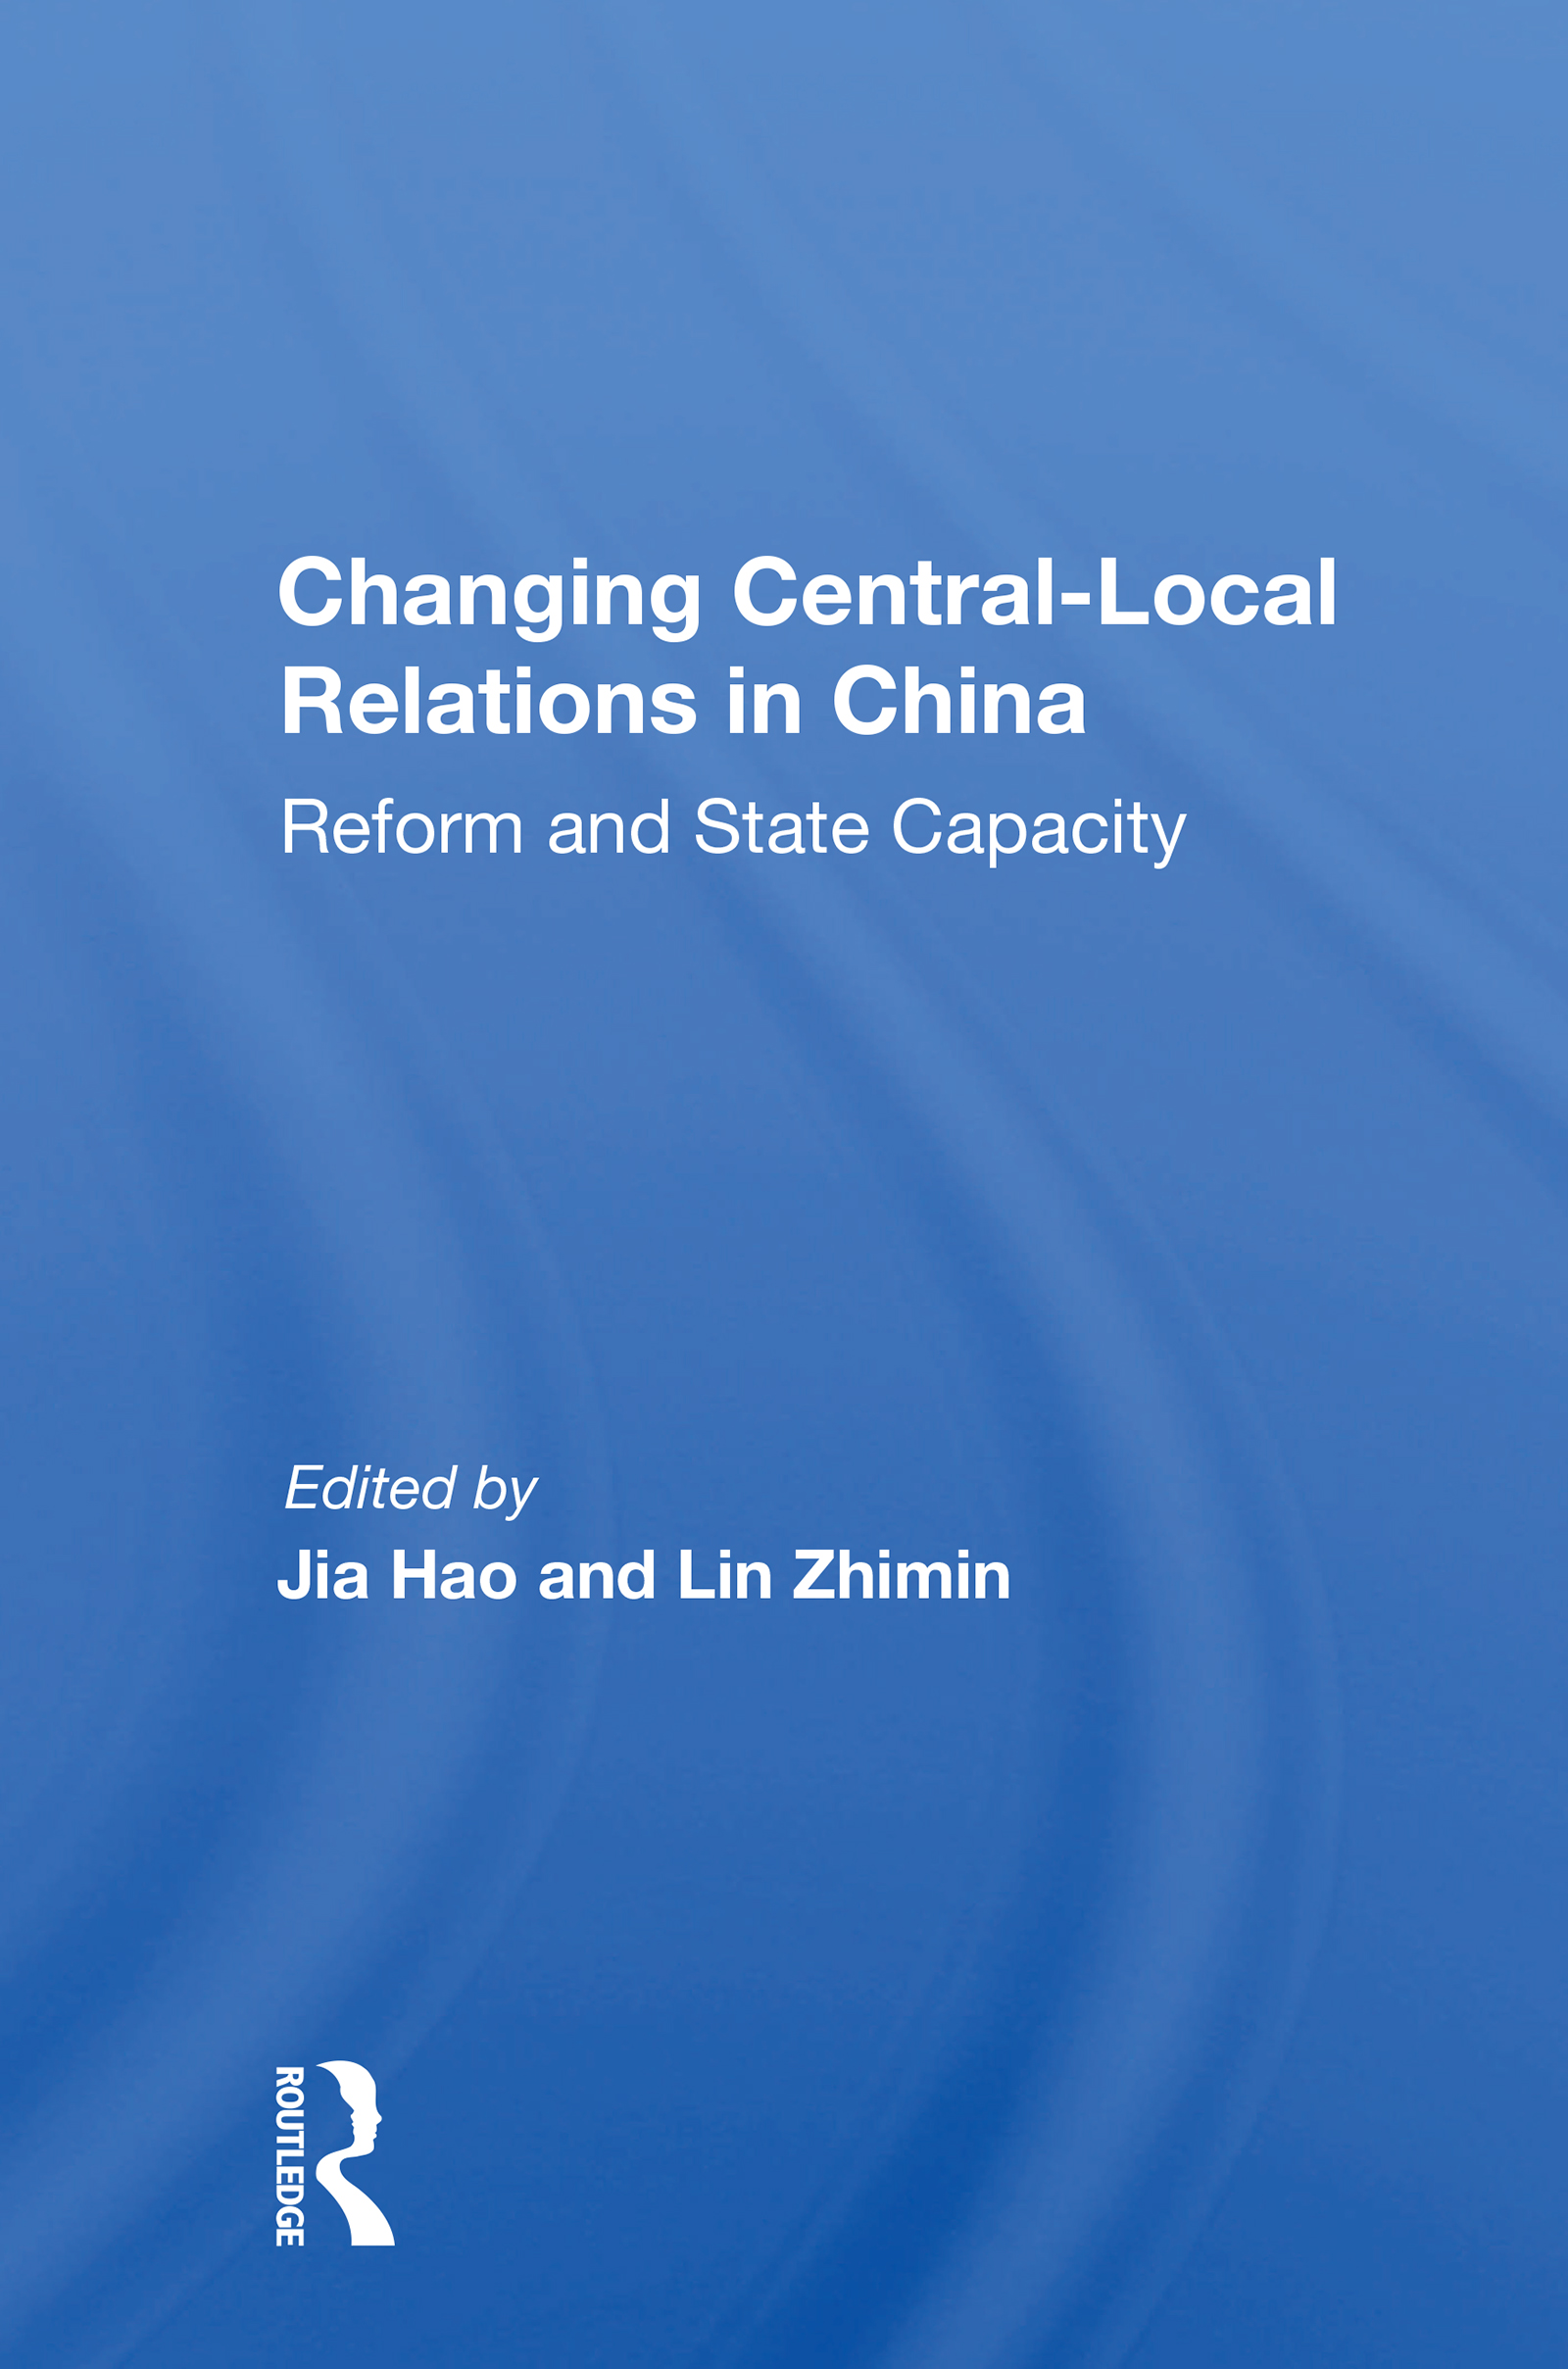 Changing Central-Local Relations in China